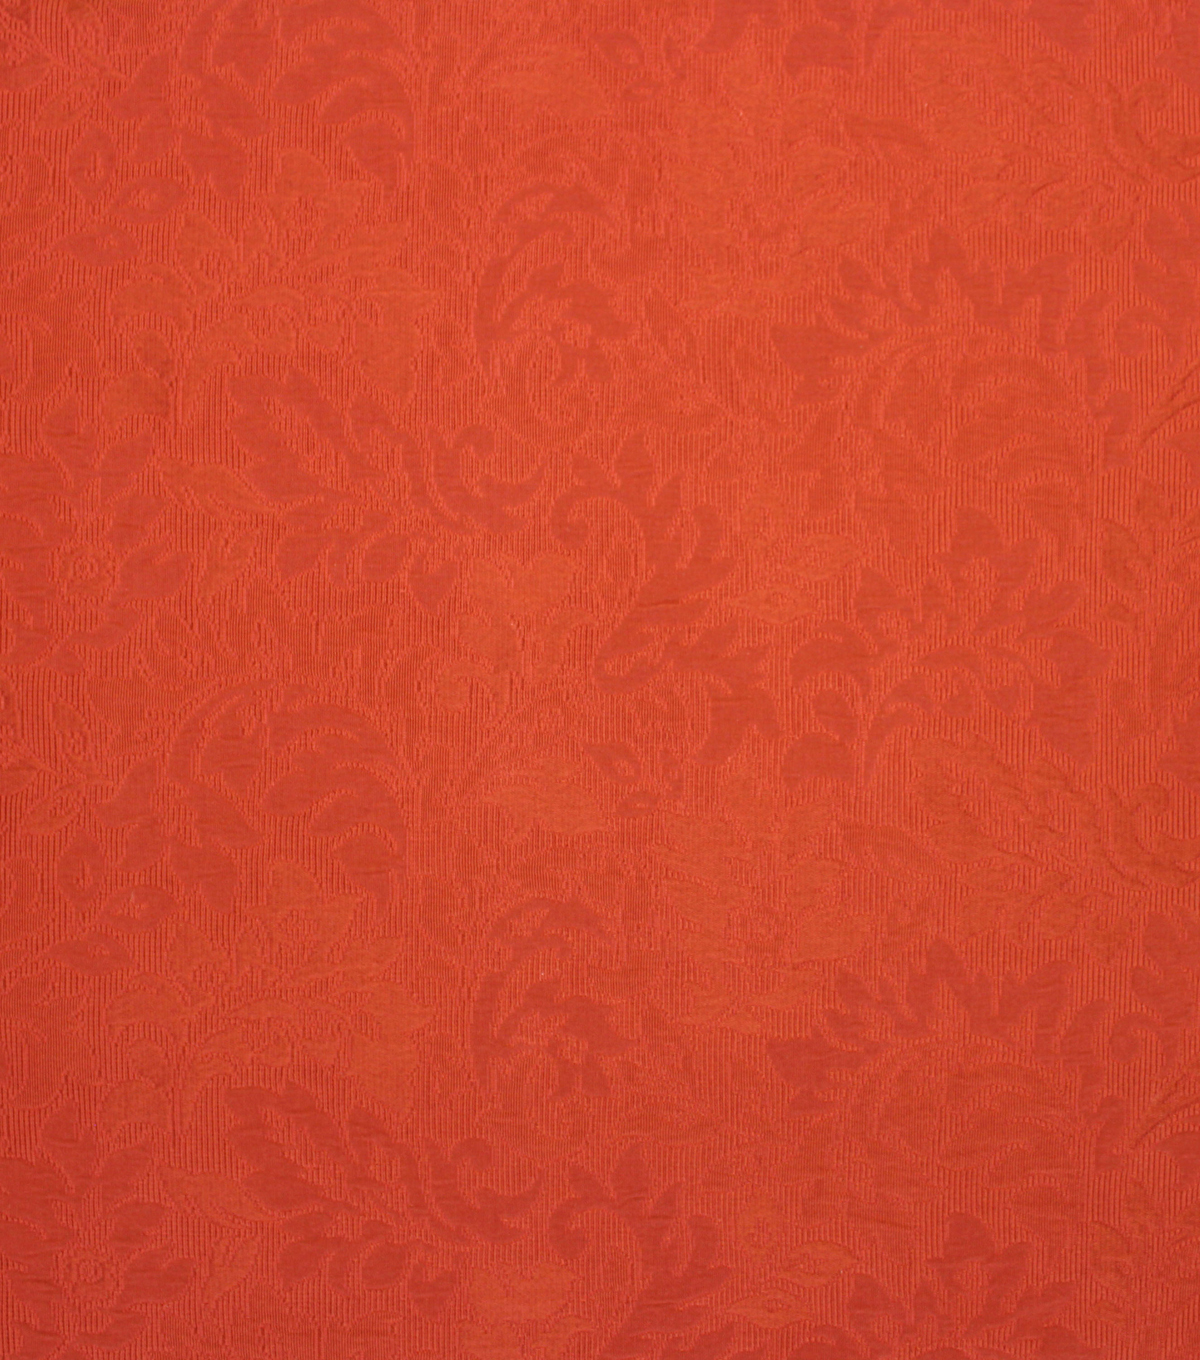 Home Decor 8\u0022x8\u0022 Fabric Swatch-Upholstery Fabric Barrow M6682-5460 Claret